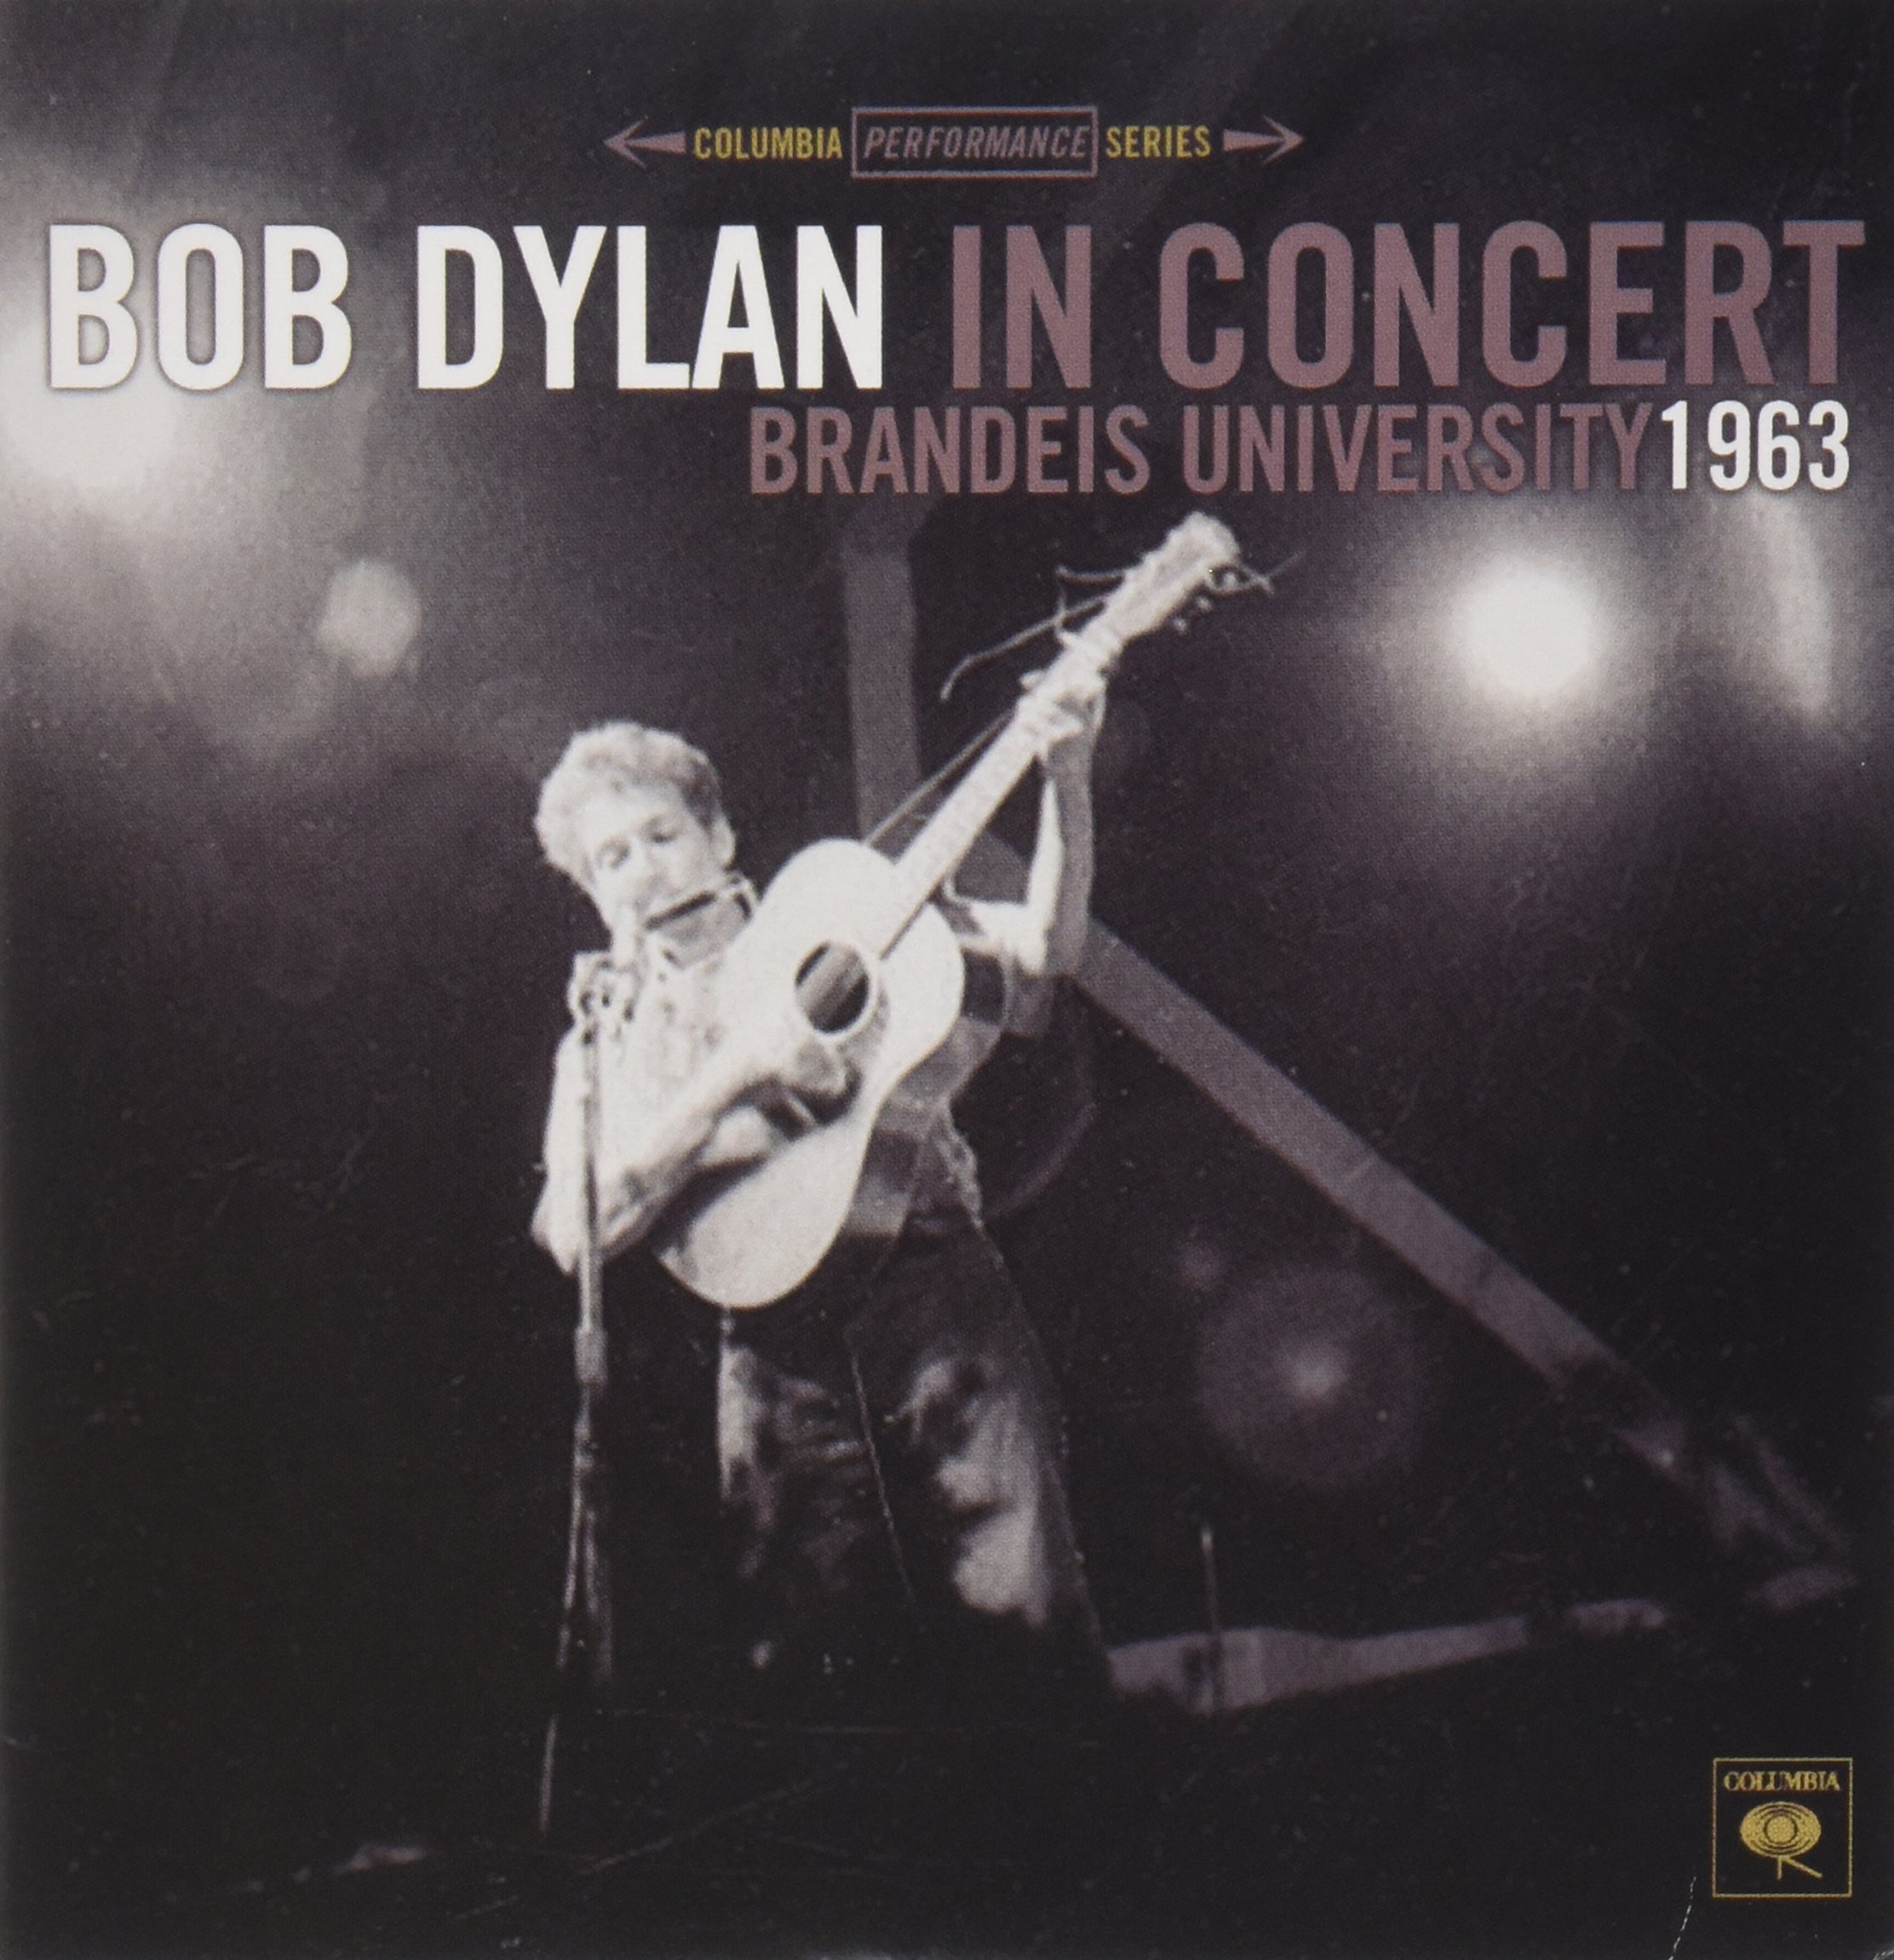 Bob Dylan In Concert: Brandeis University, 1963 by Columbia Records